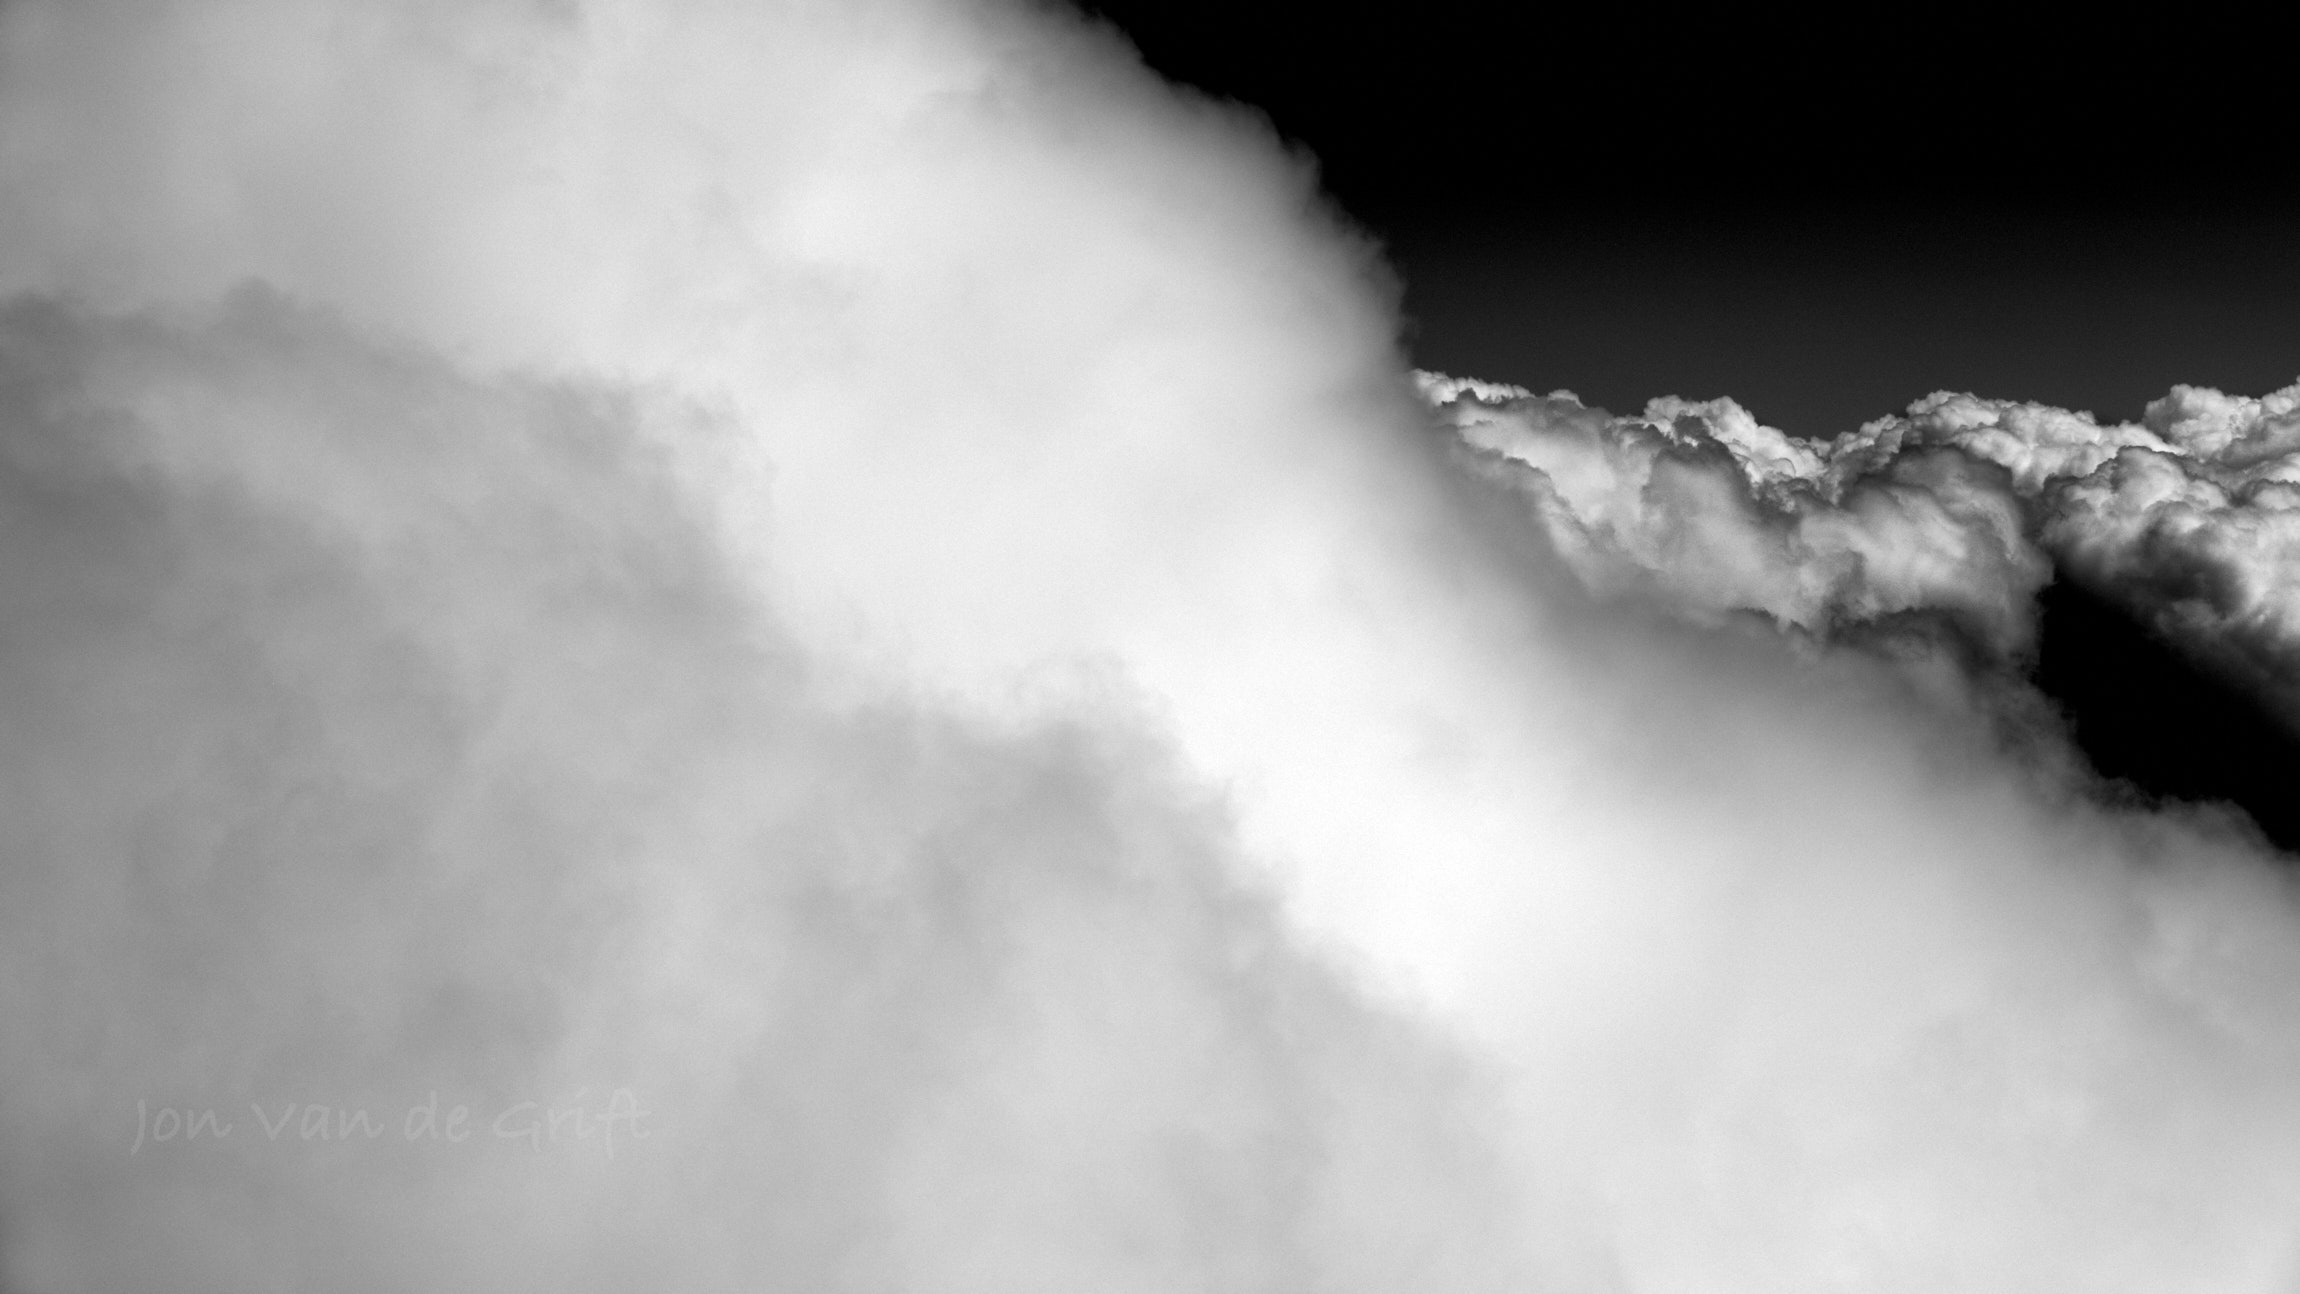 Monochromatic aerial photograph captured from within cumulus clouds.